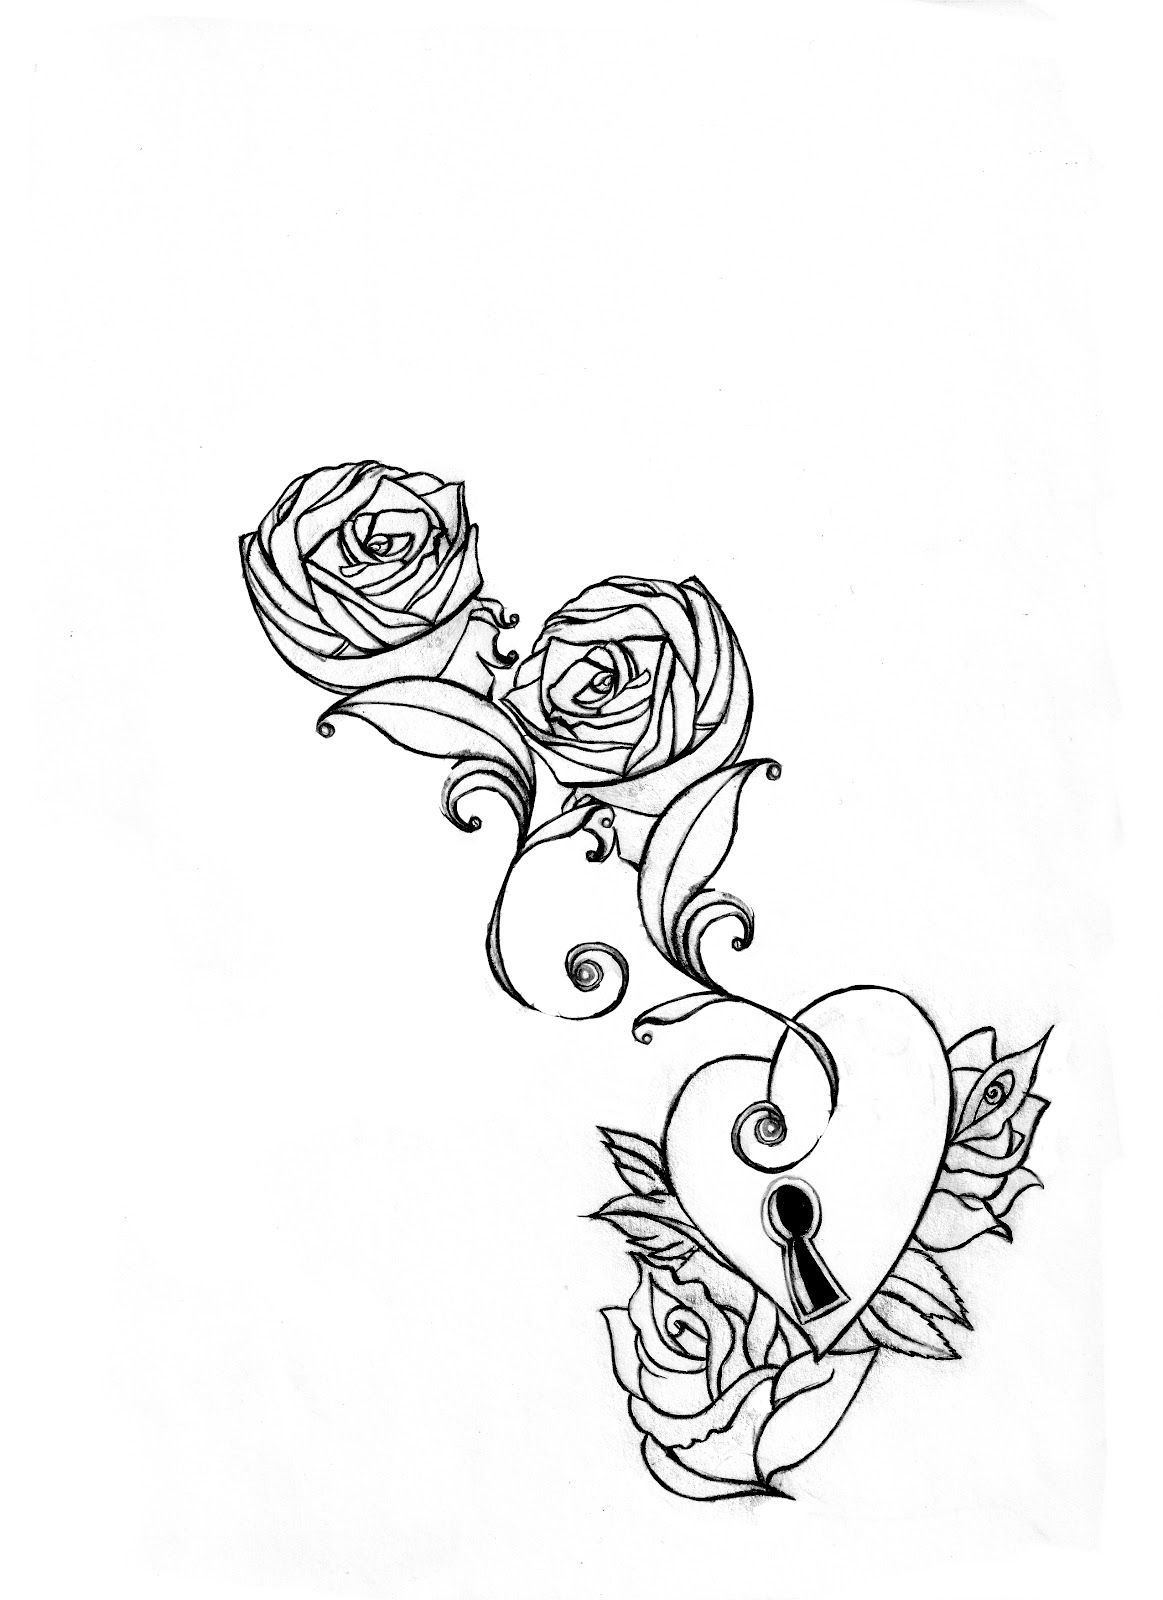 Hearts and Roses Coloring Pages | MARK CHILCOTT: Roses and Hearts ...